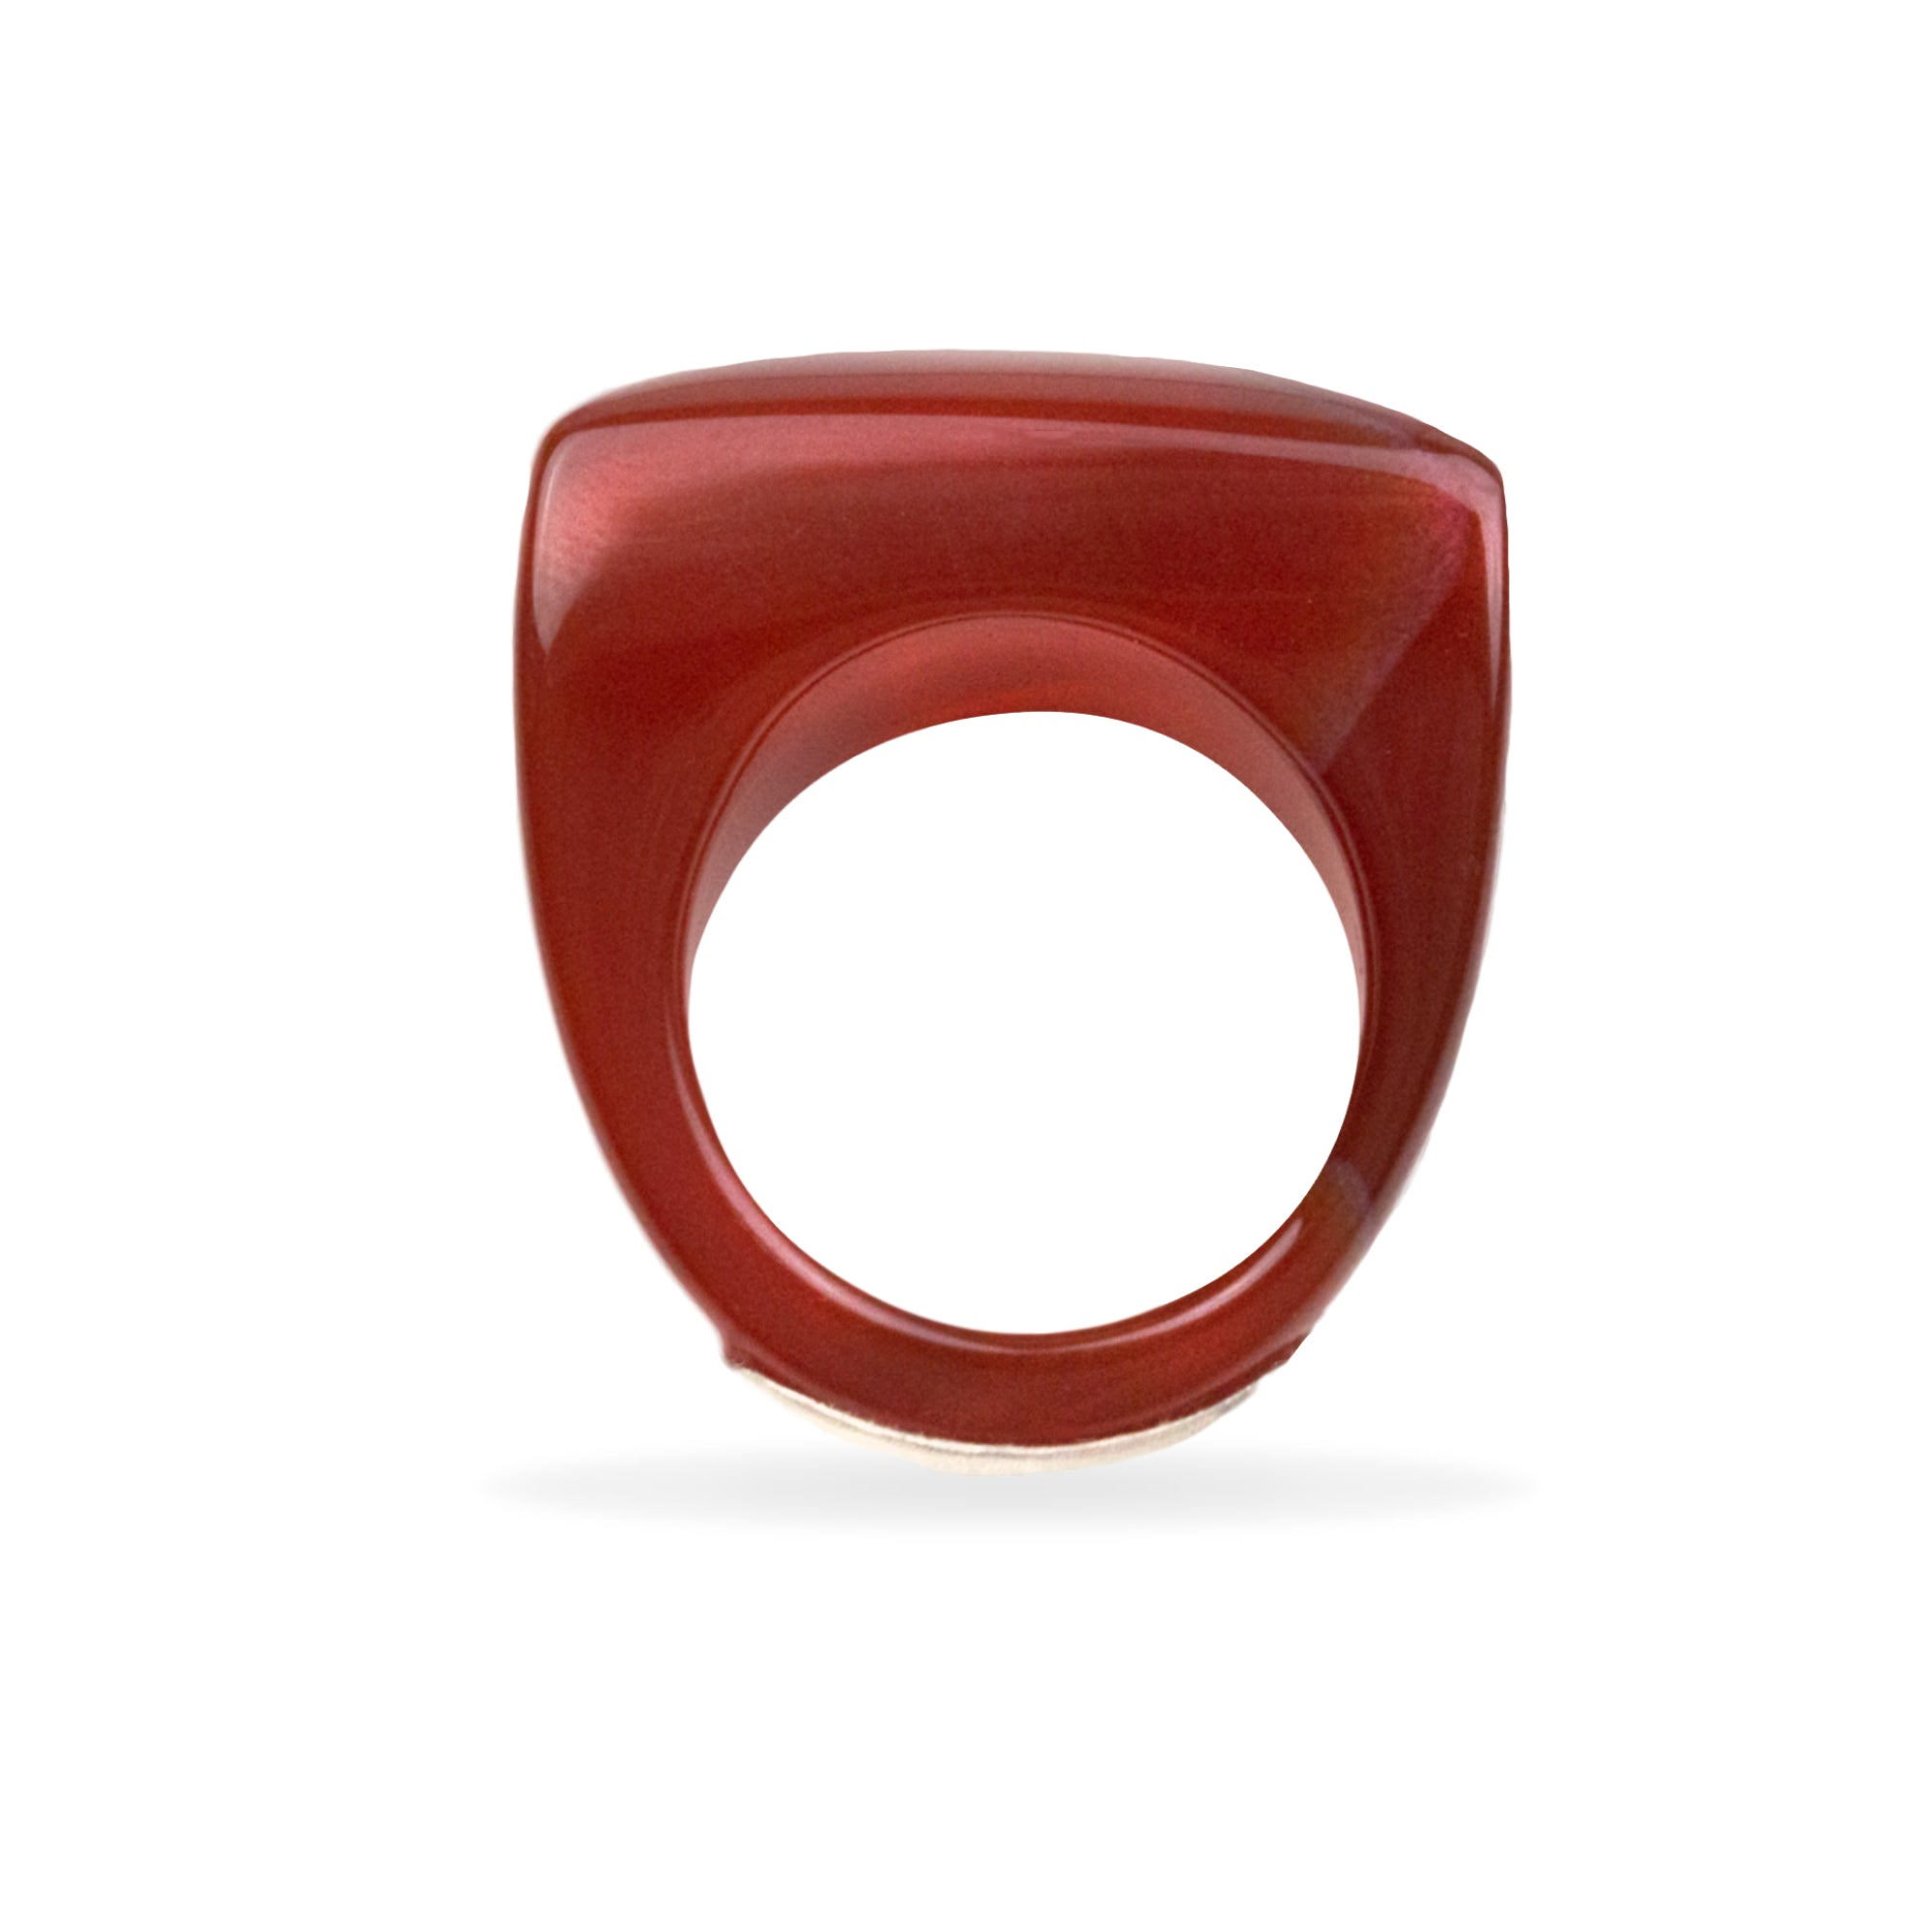 Carnelian Pillow Ring